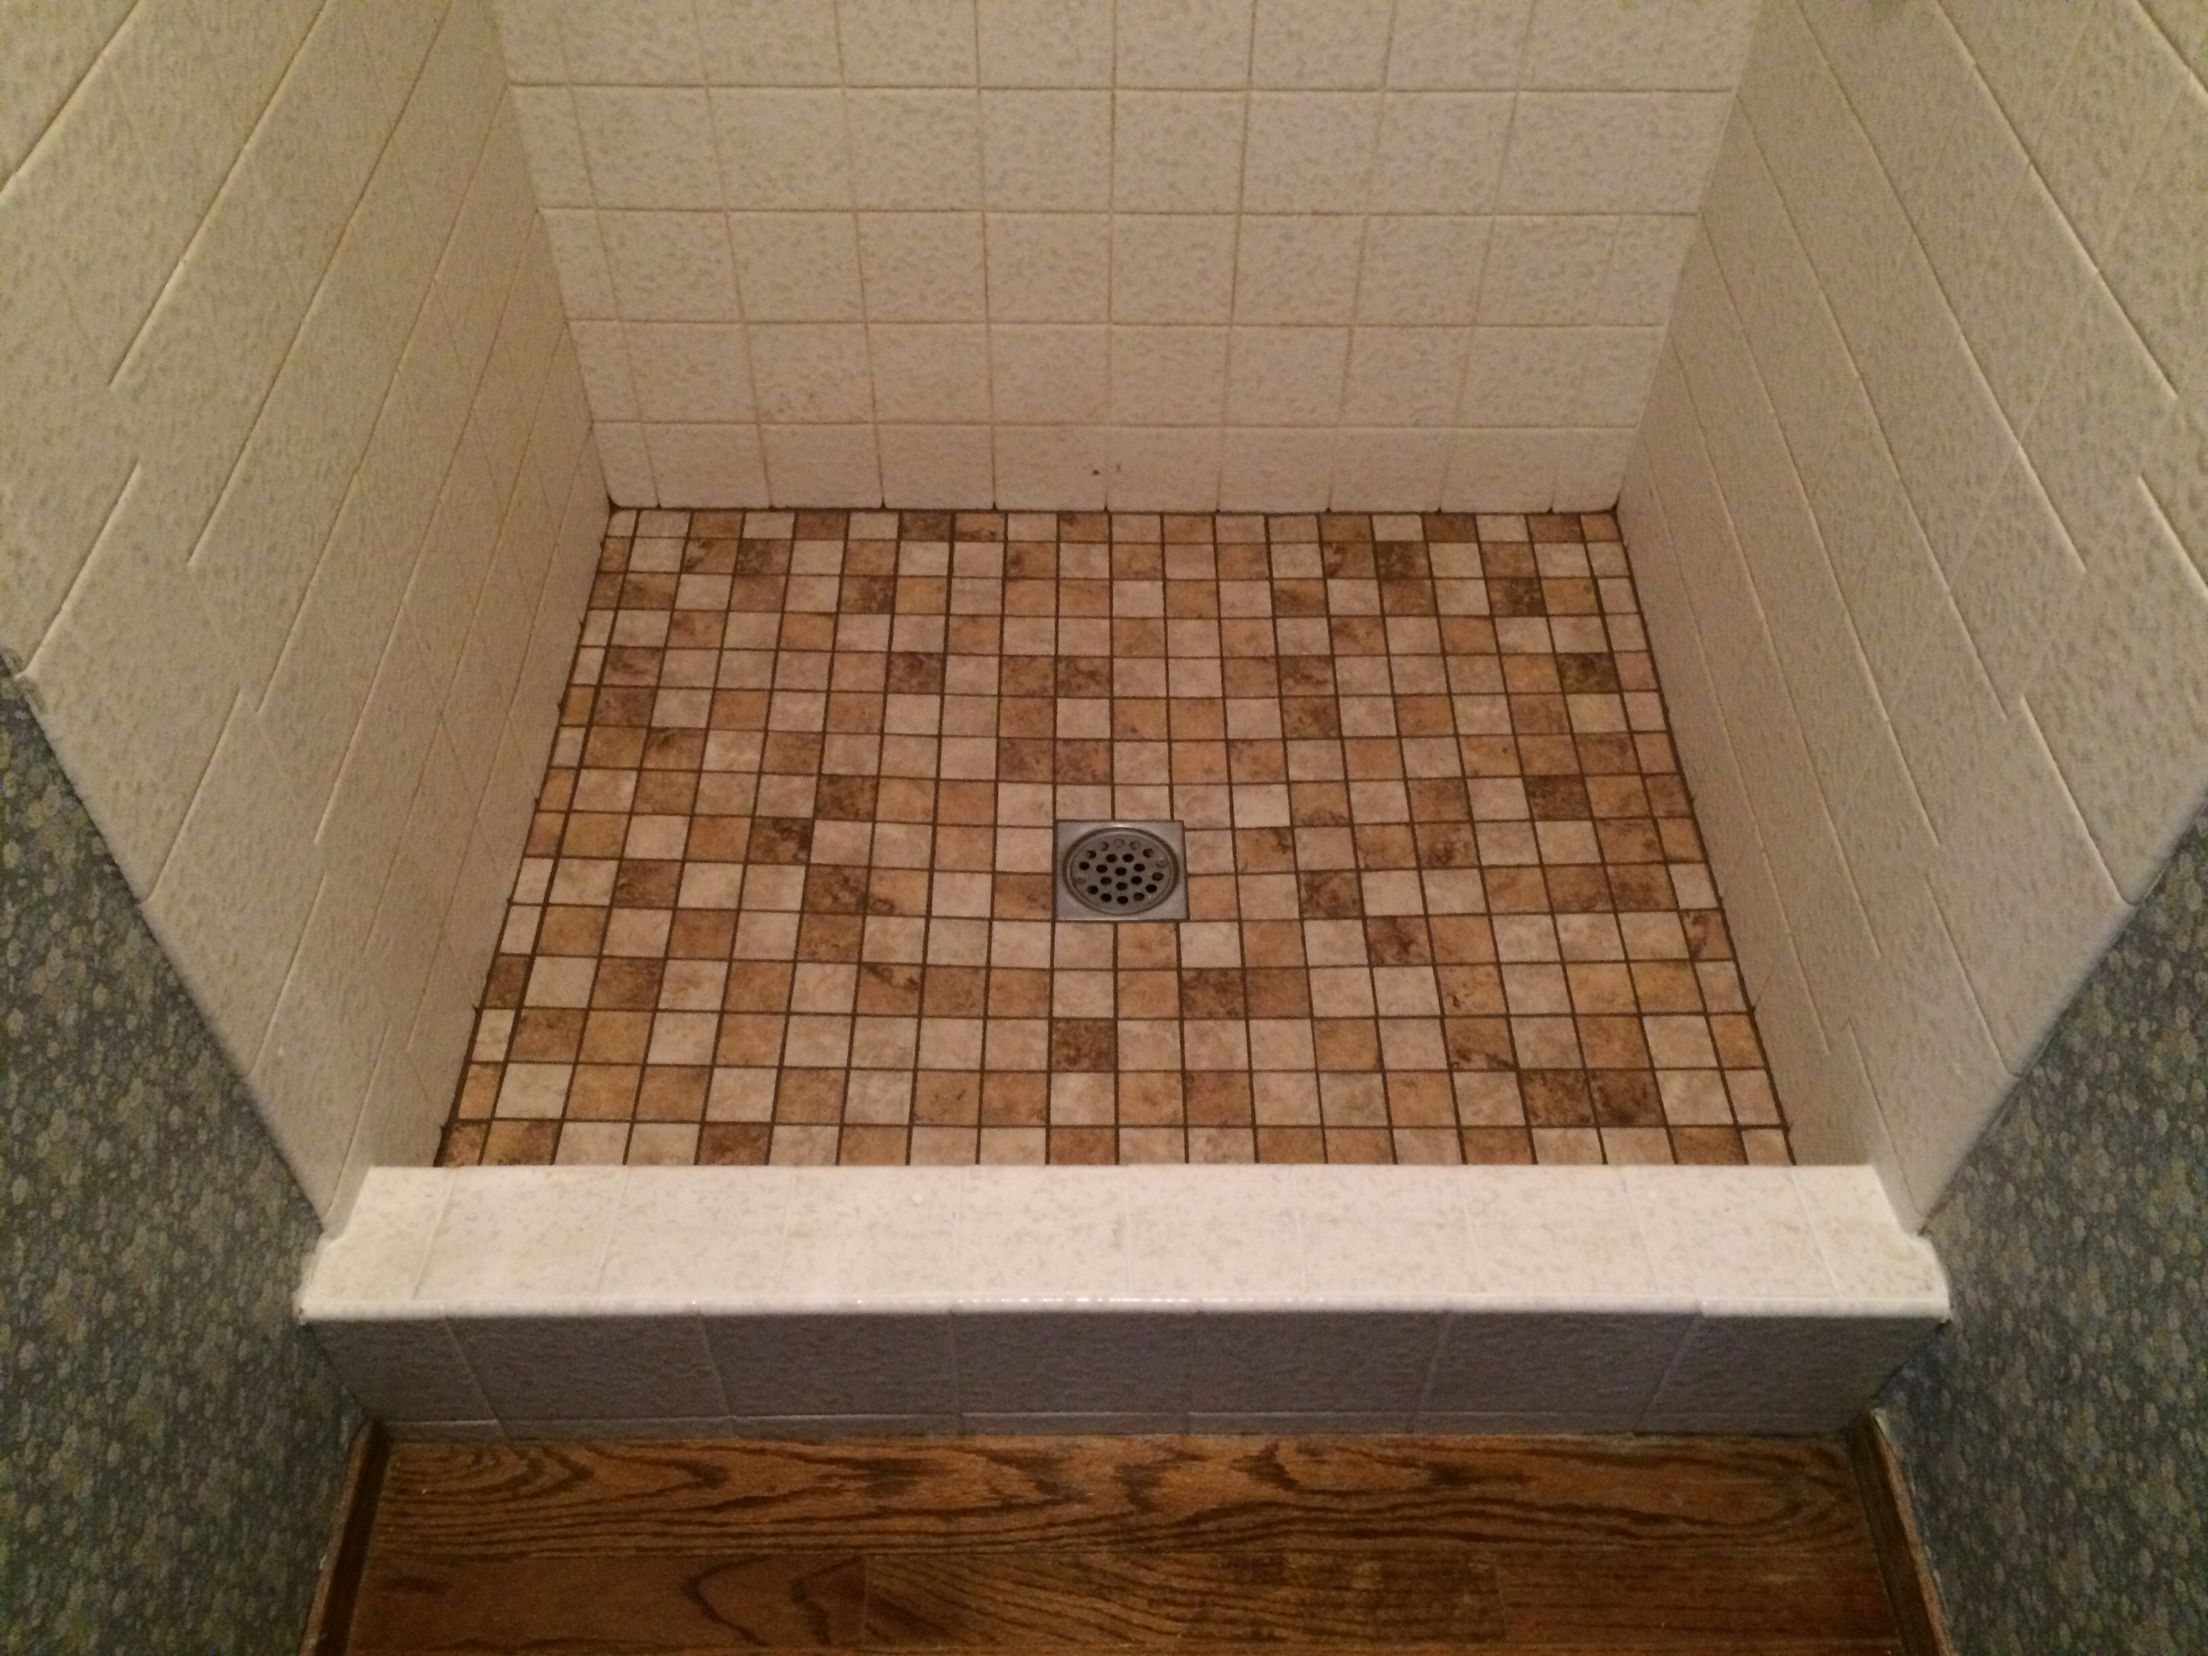 2 x 2 porcelain tile with Super Grout Additive® has given